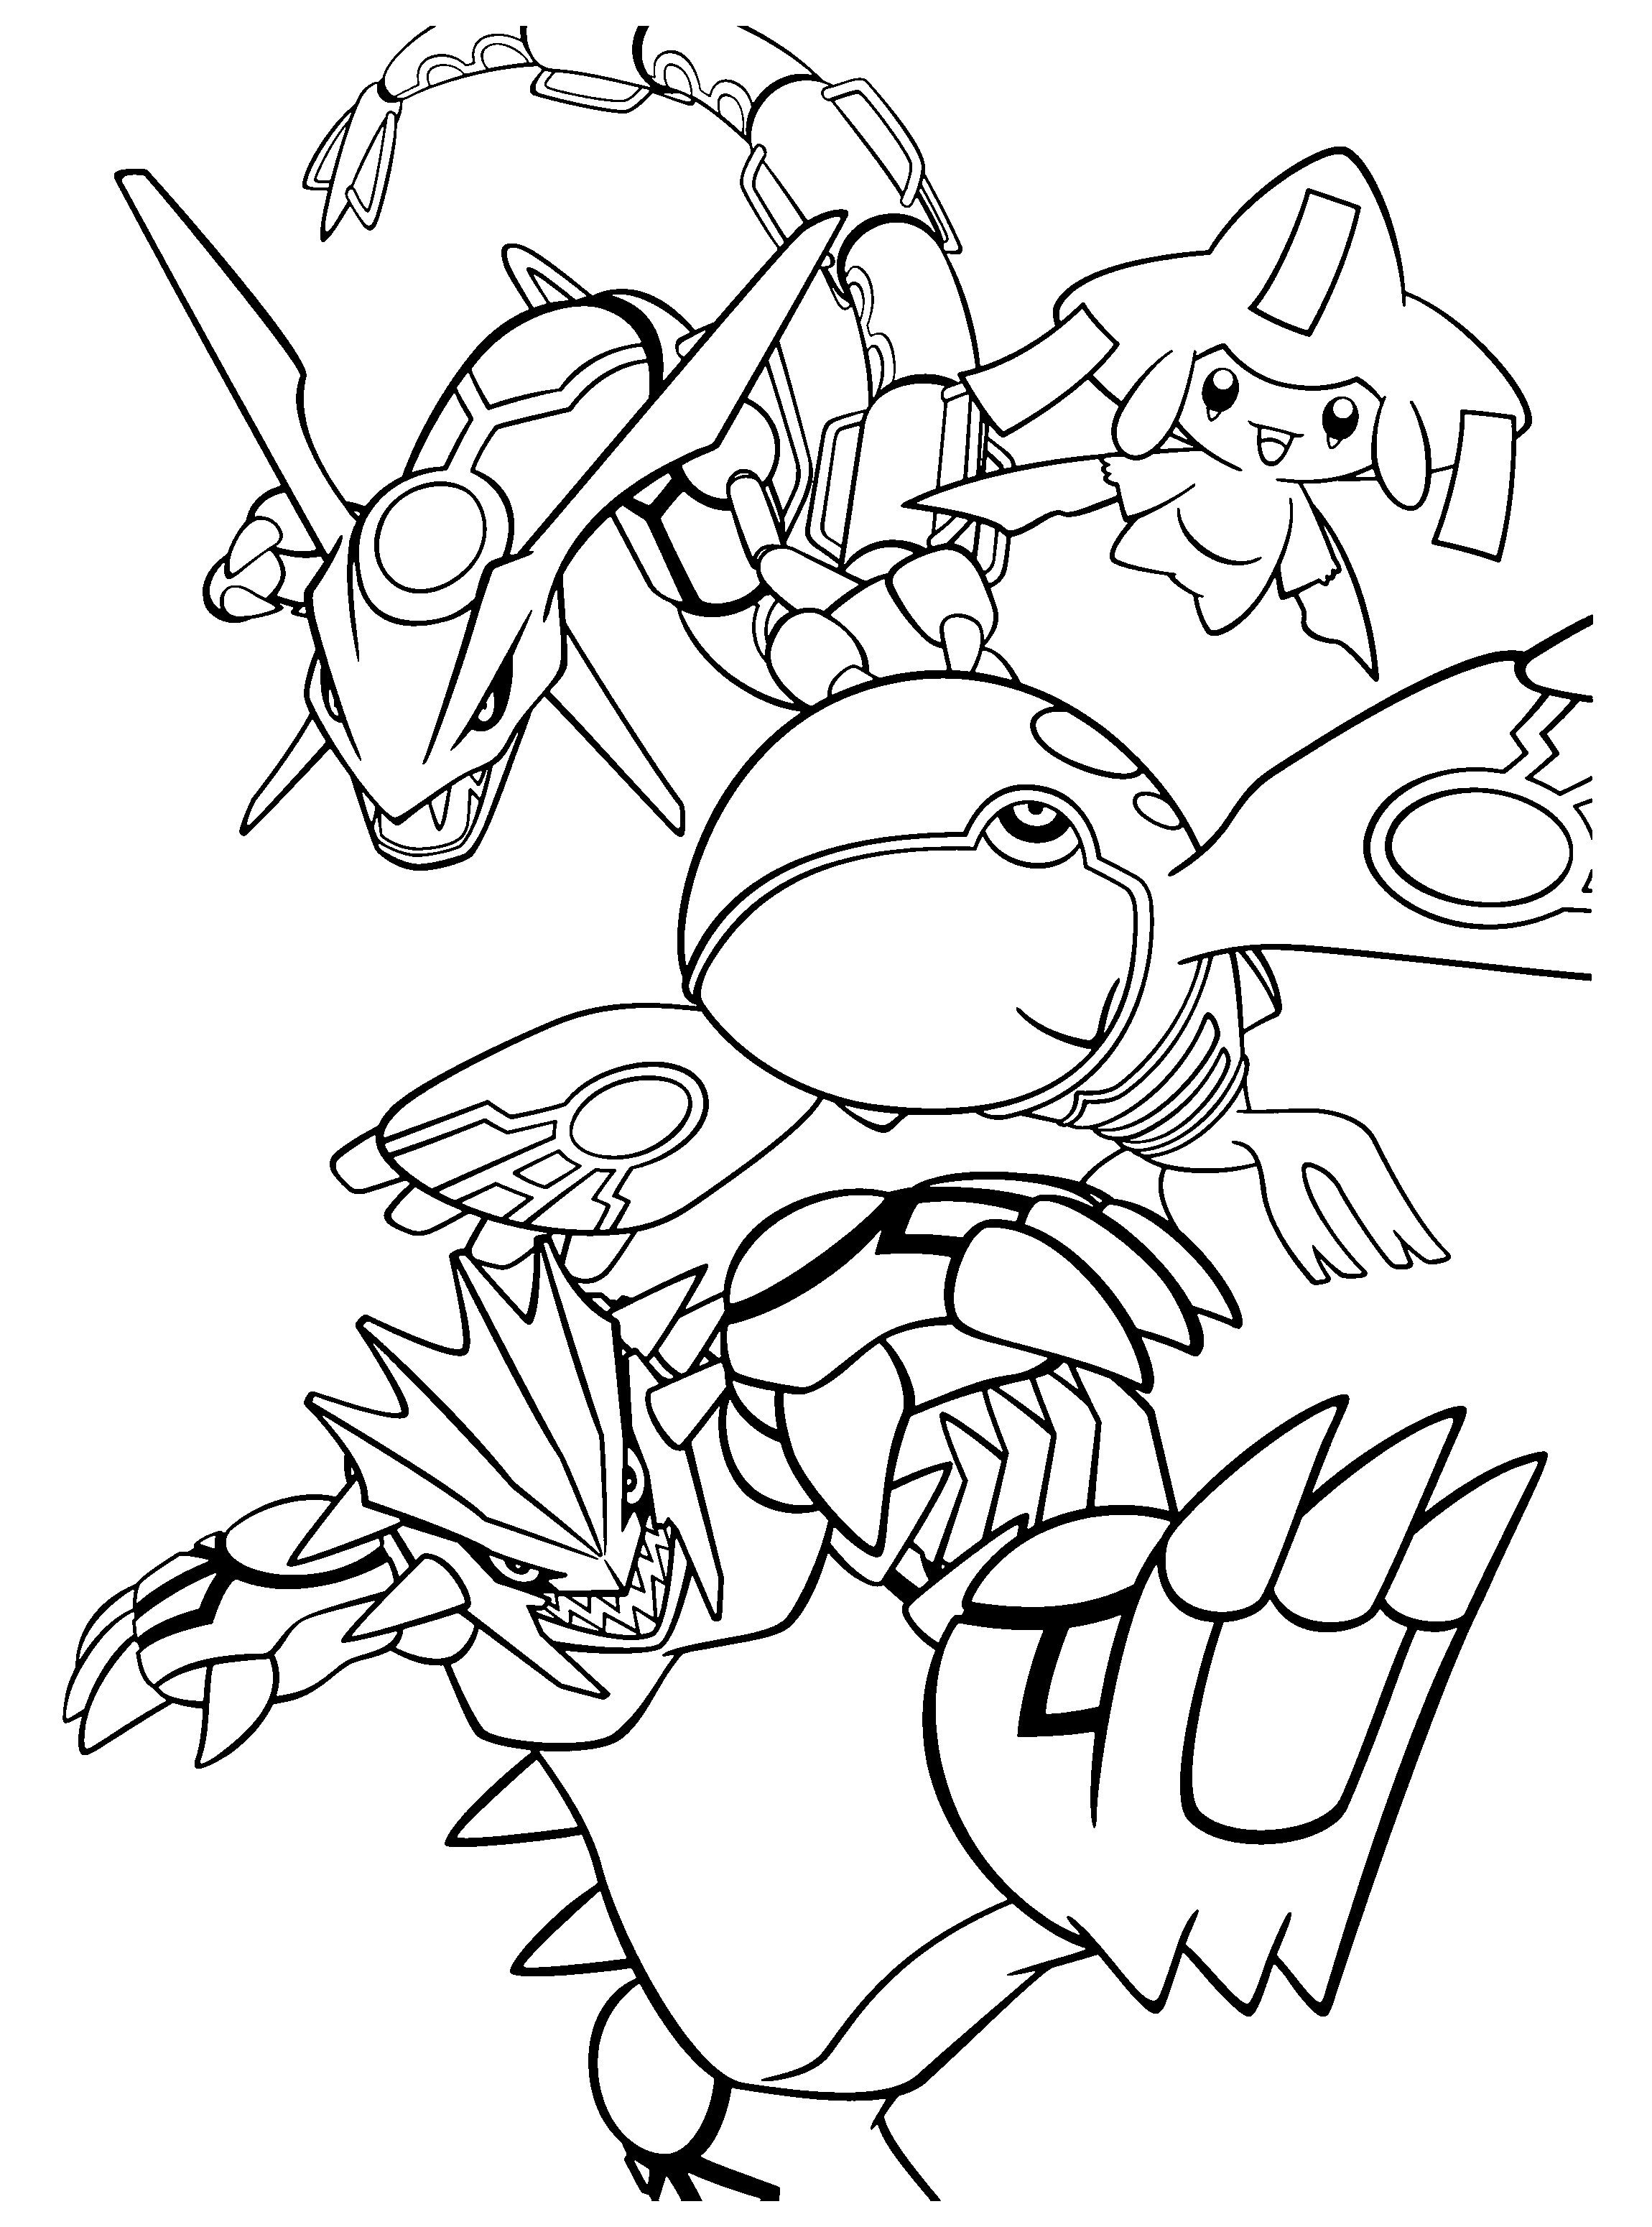 Pokemon Coloring Pages Groudon and Kyogre Pokemon